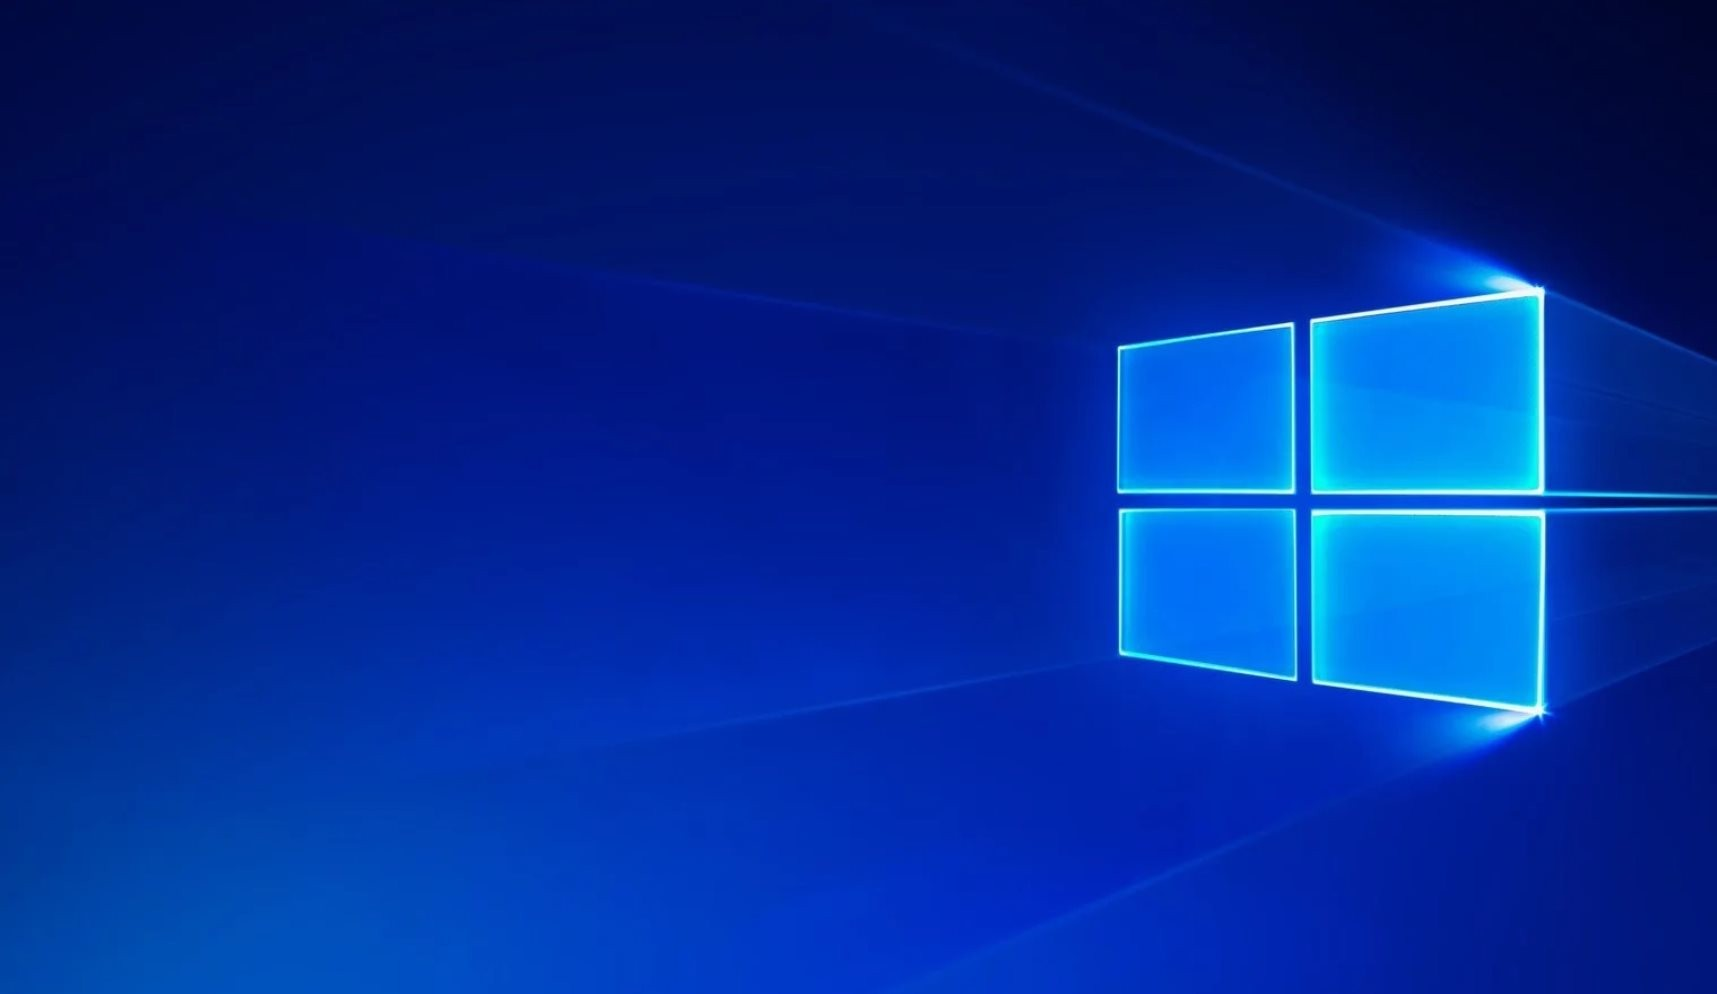 Intel Driver Compatibility Issues Block Latest Windows 10 Update